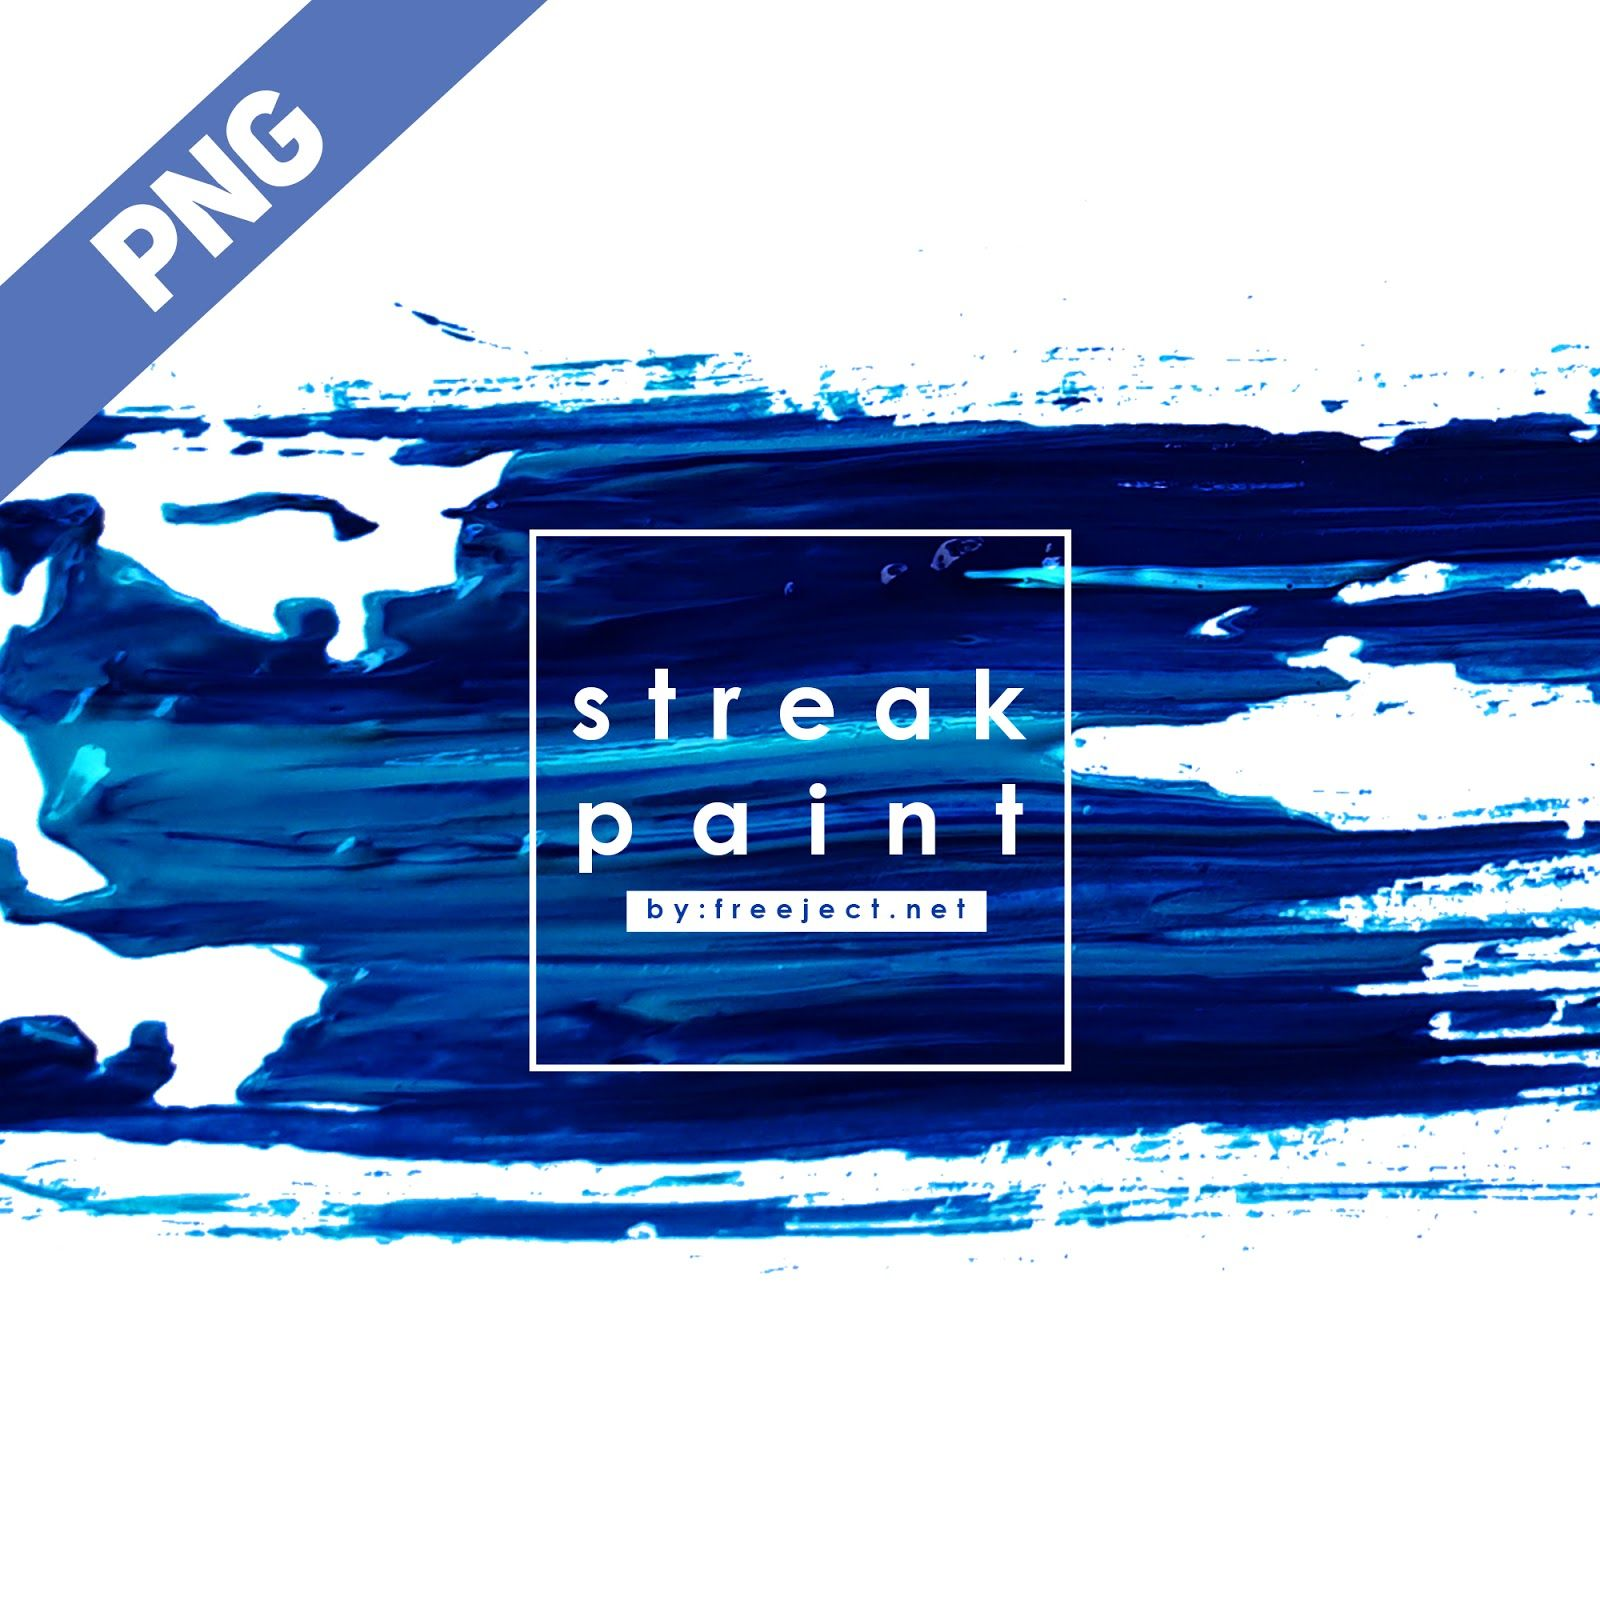 Freeject Net Free Download 6 Streak Paint Image Png Free Graphic Design Free Download Photoshop Create Text